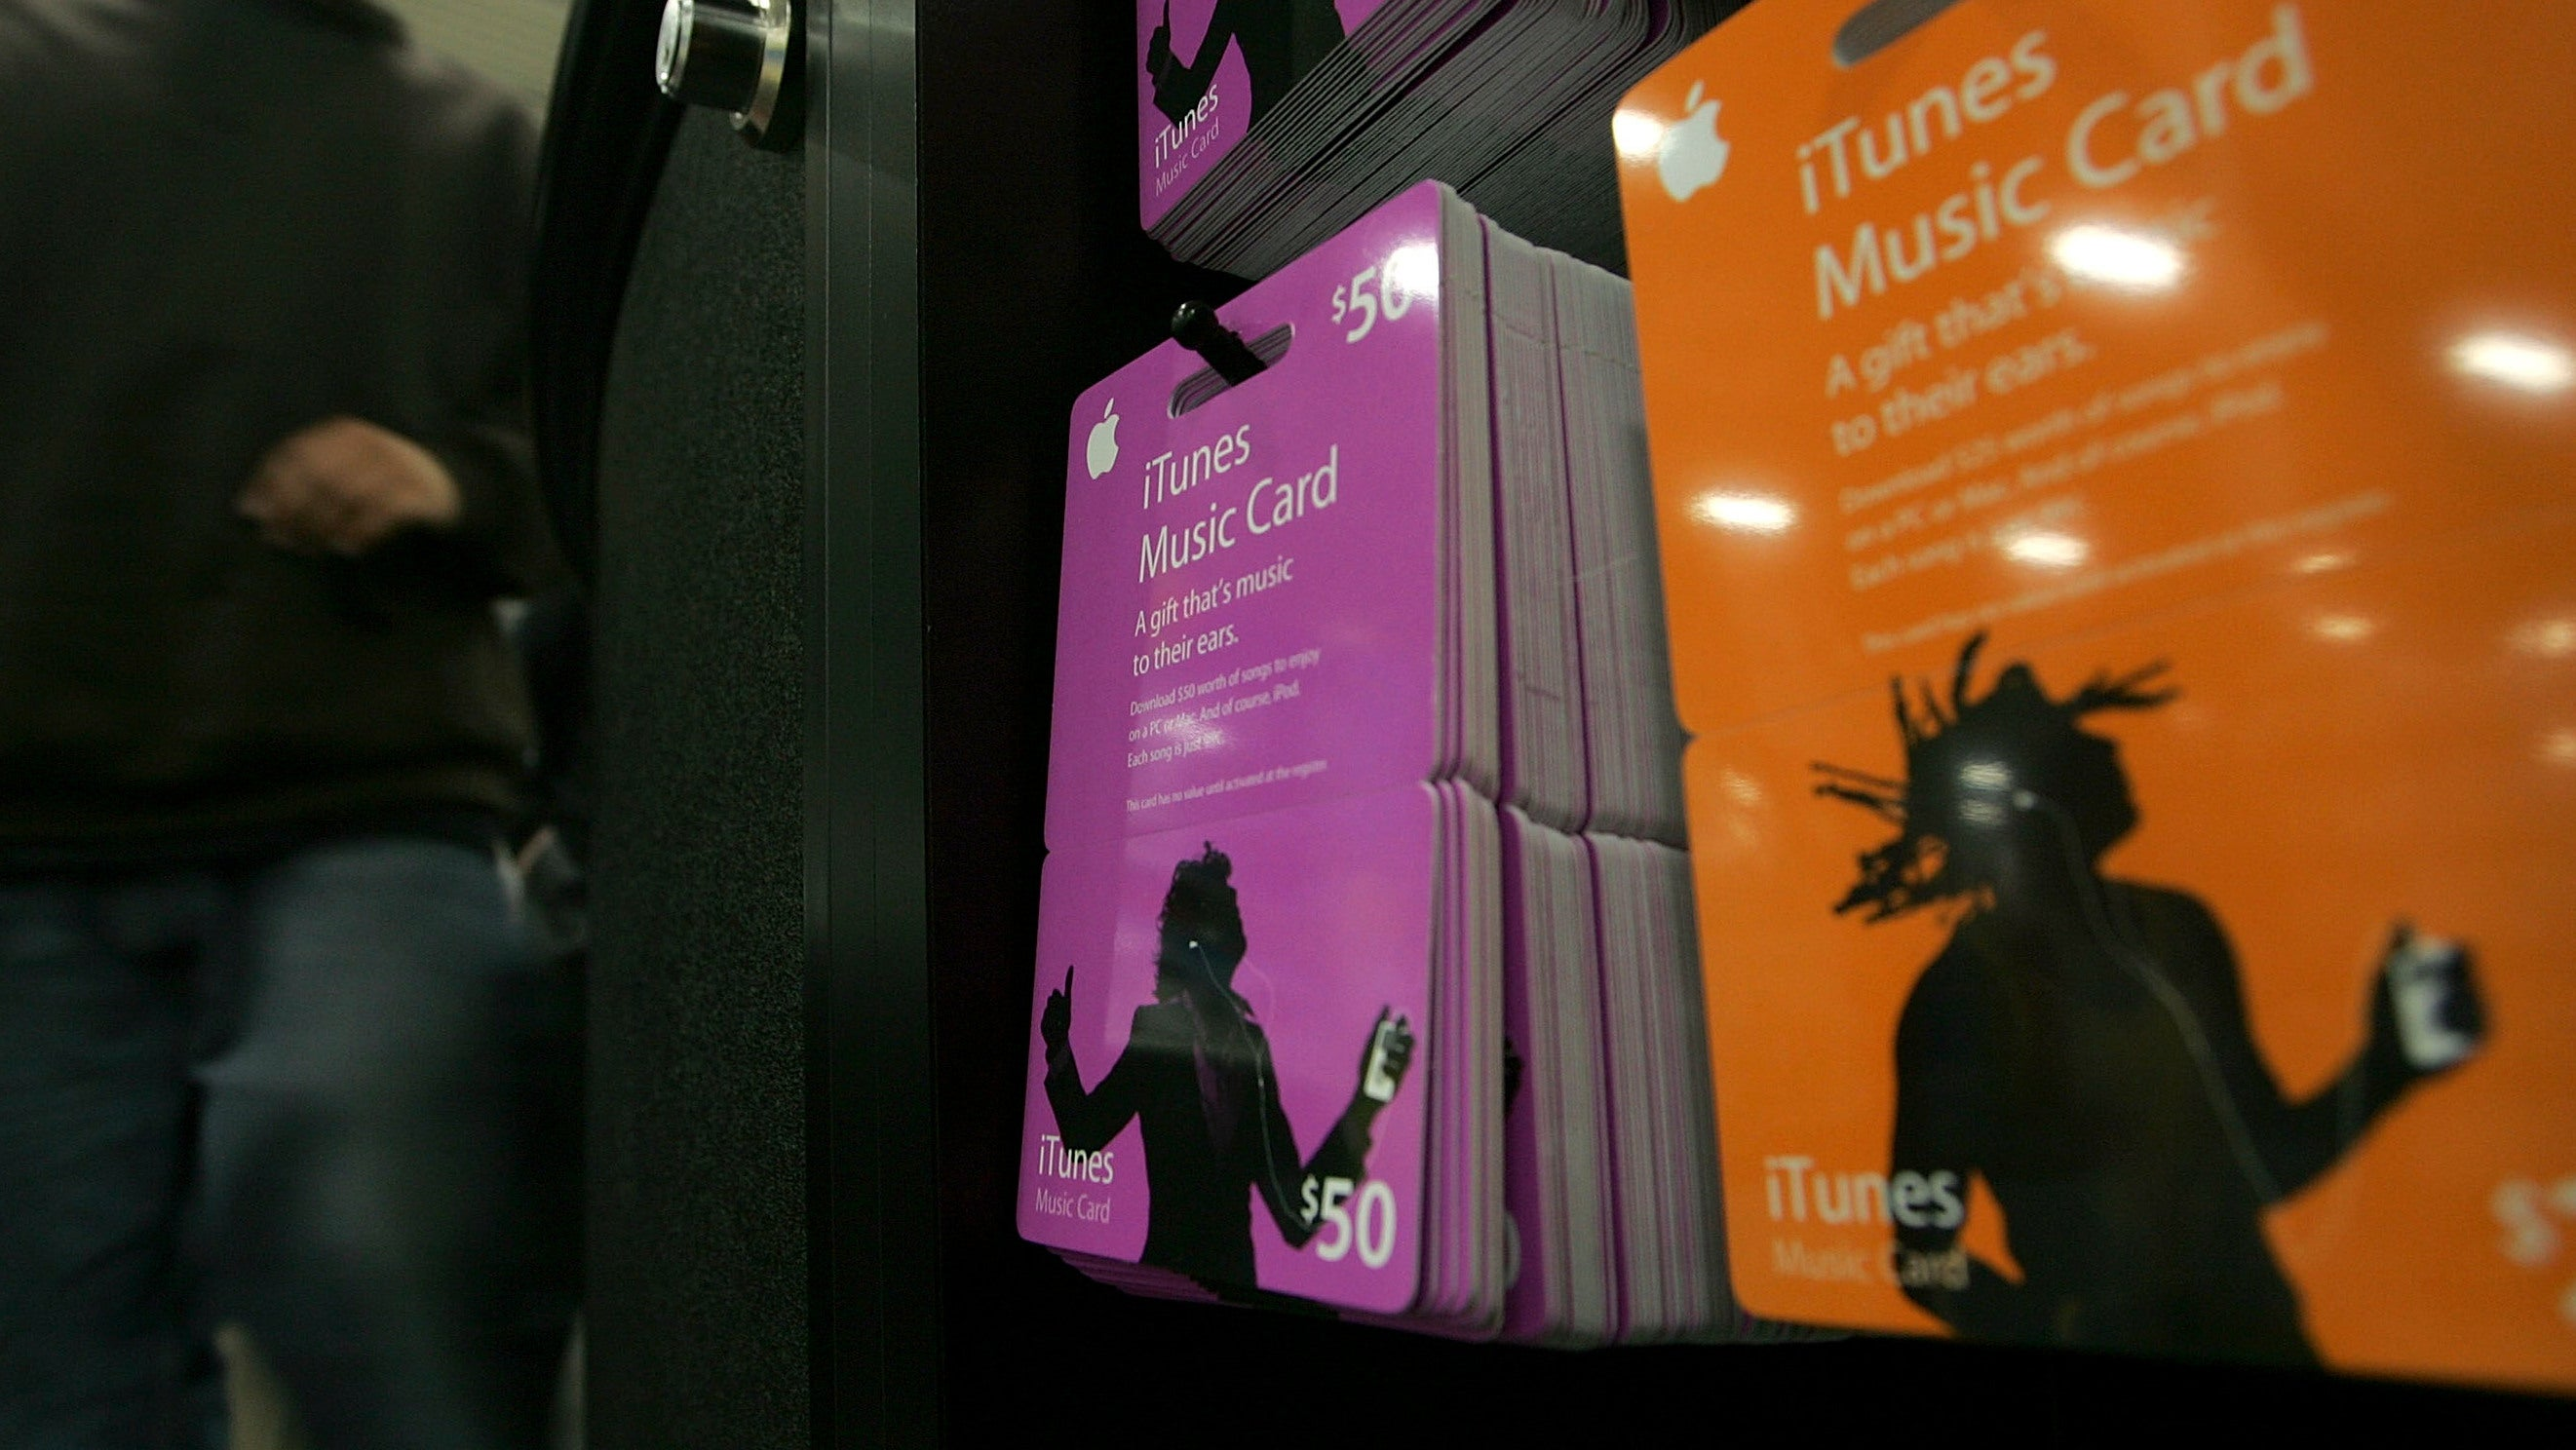 Dozens Sentenced In US For Call Centre Scam Where Victims Bought iTunes Gift Cards Under Threat Of Arrest